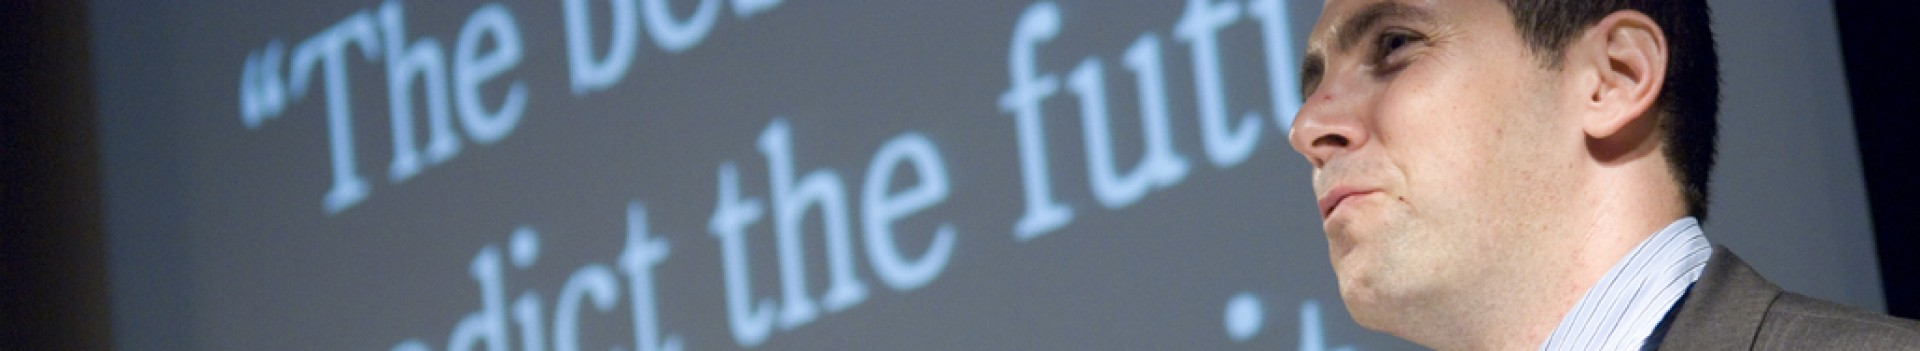 "Man by projector screen showing ""The best way to predict the future is to create it"""